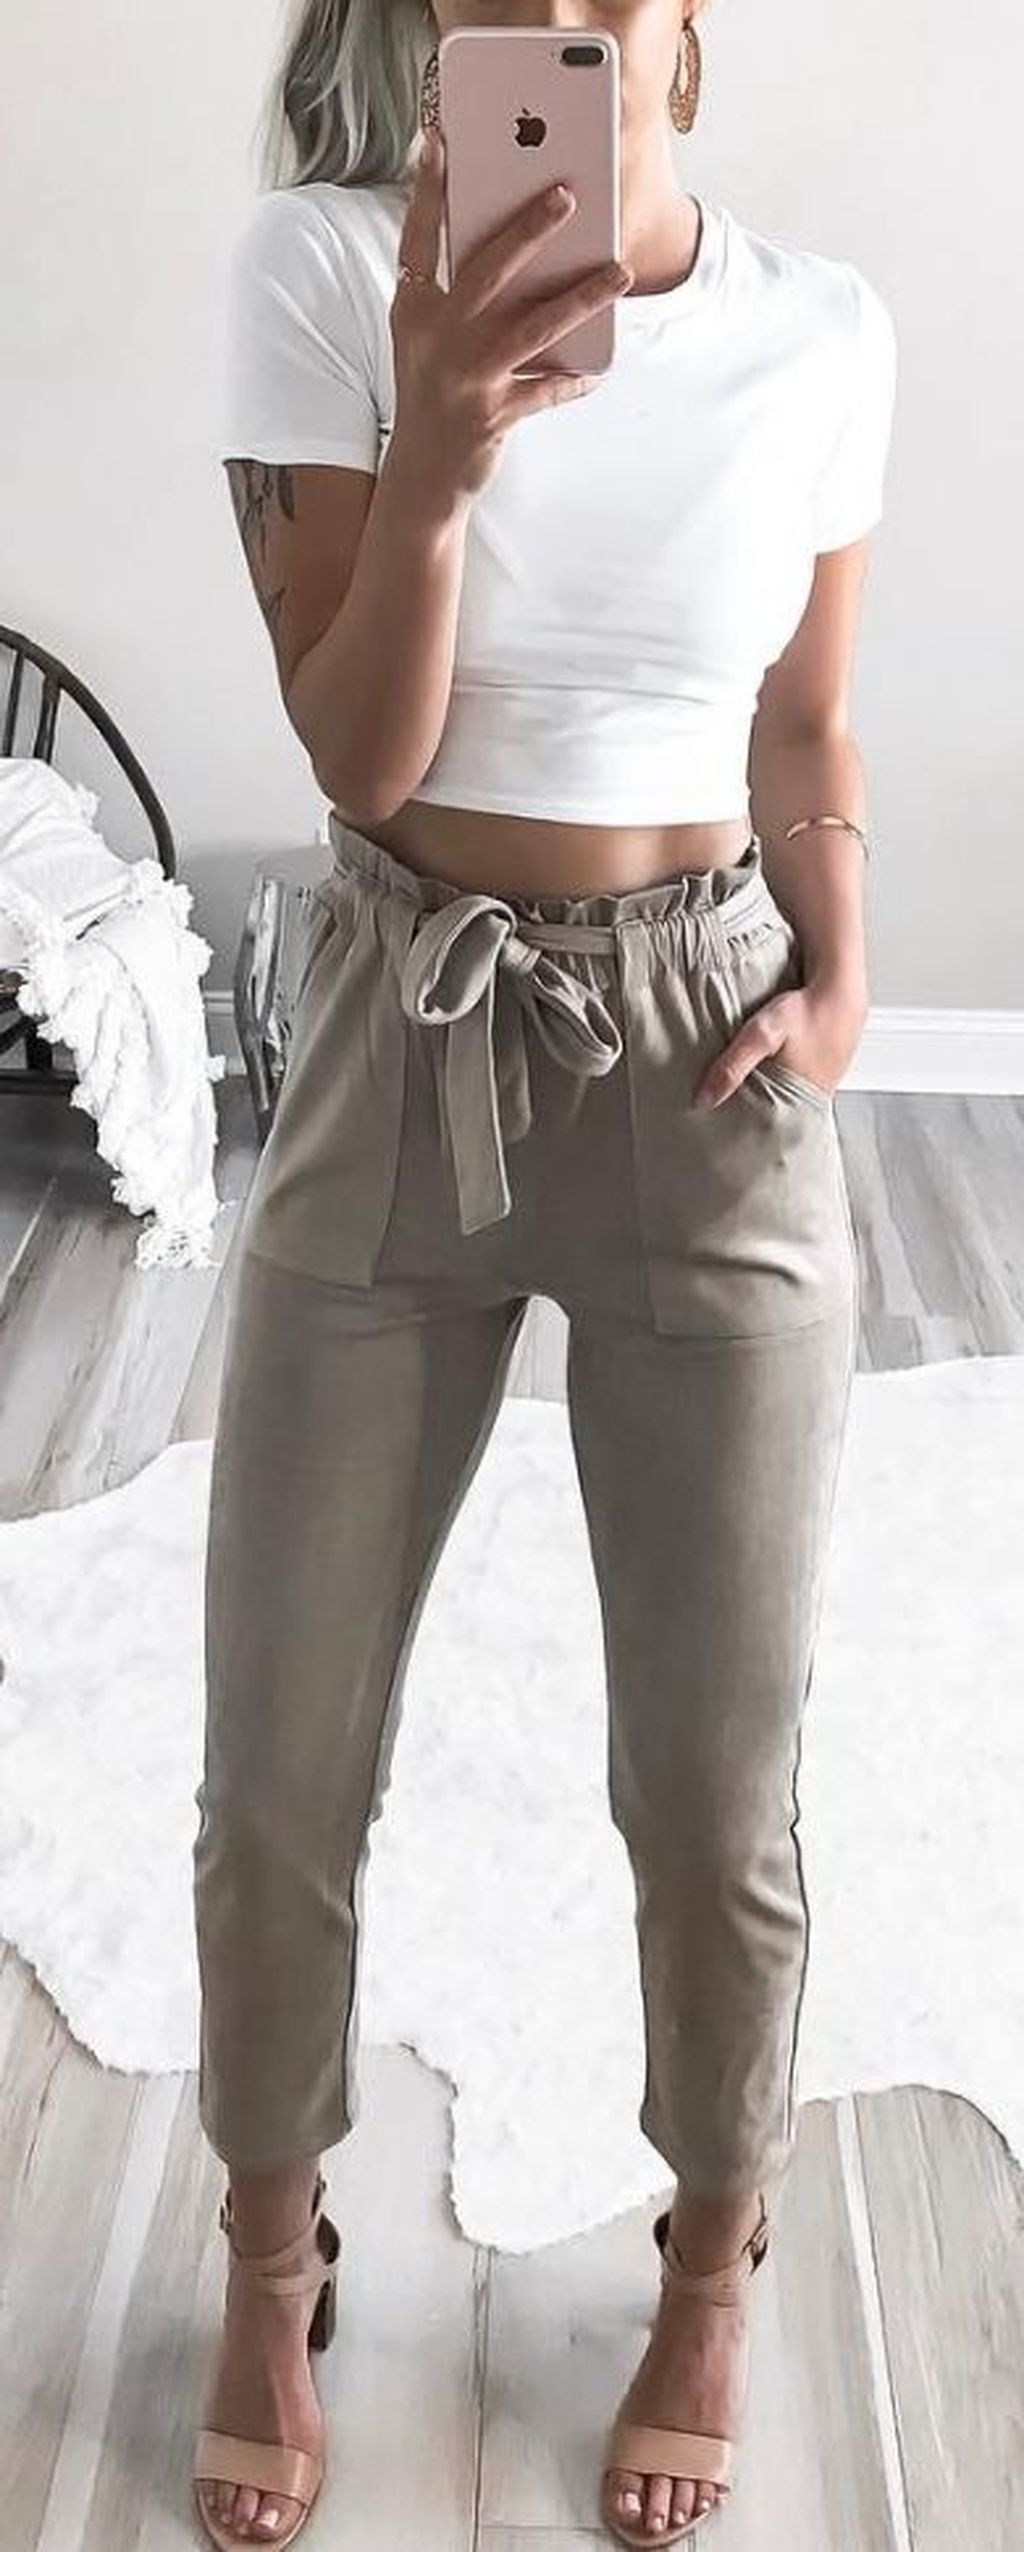 #SummerOutfits Awesome 62 Outstanding Summer Outftis Ideas for Teen Girls. More at http://aksahinjewelry.com/2017/08/29/62-outstanding-summer-outftis-ideas-teen-girls/ #casualwinteroutfit